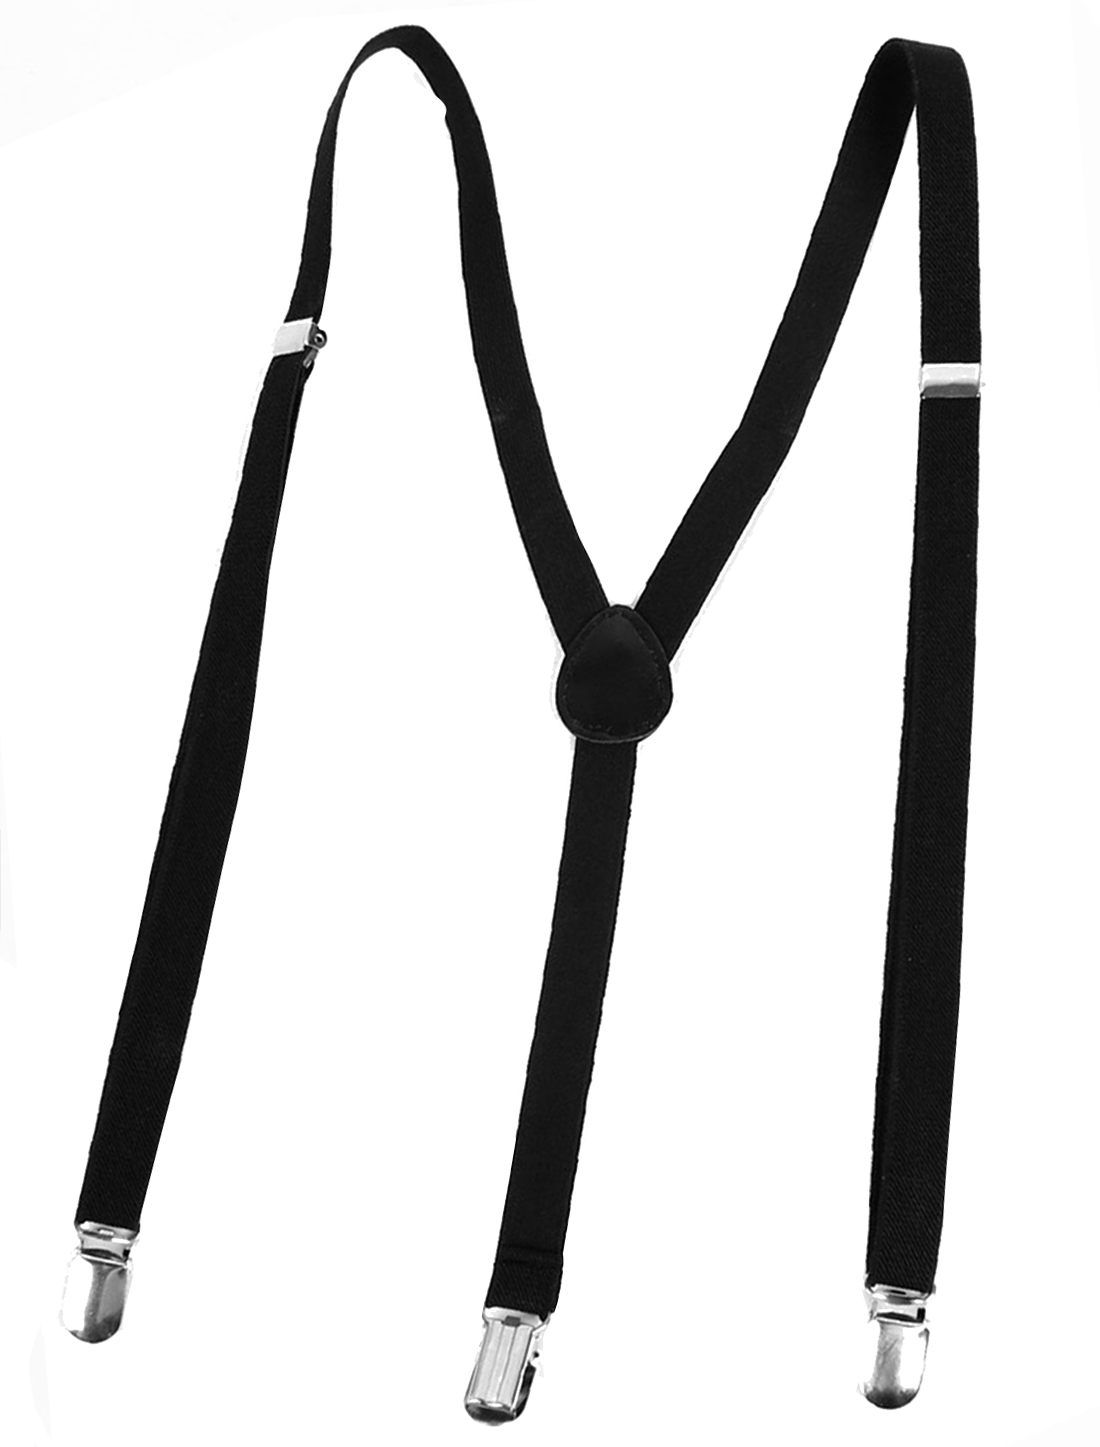 Unisex Clip-on Adjustable Pants Fully Elastic Y-Back Suspender Braces Black